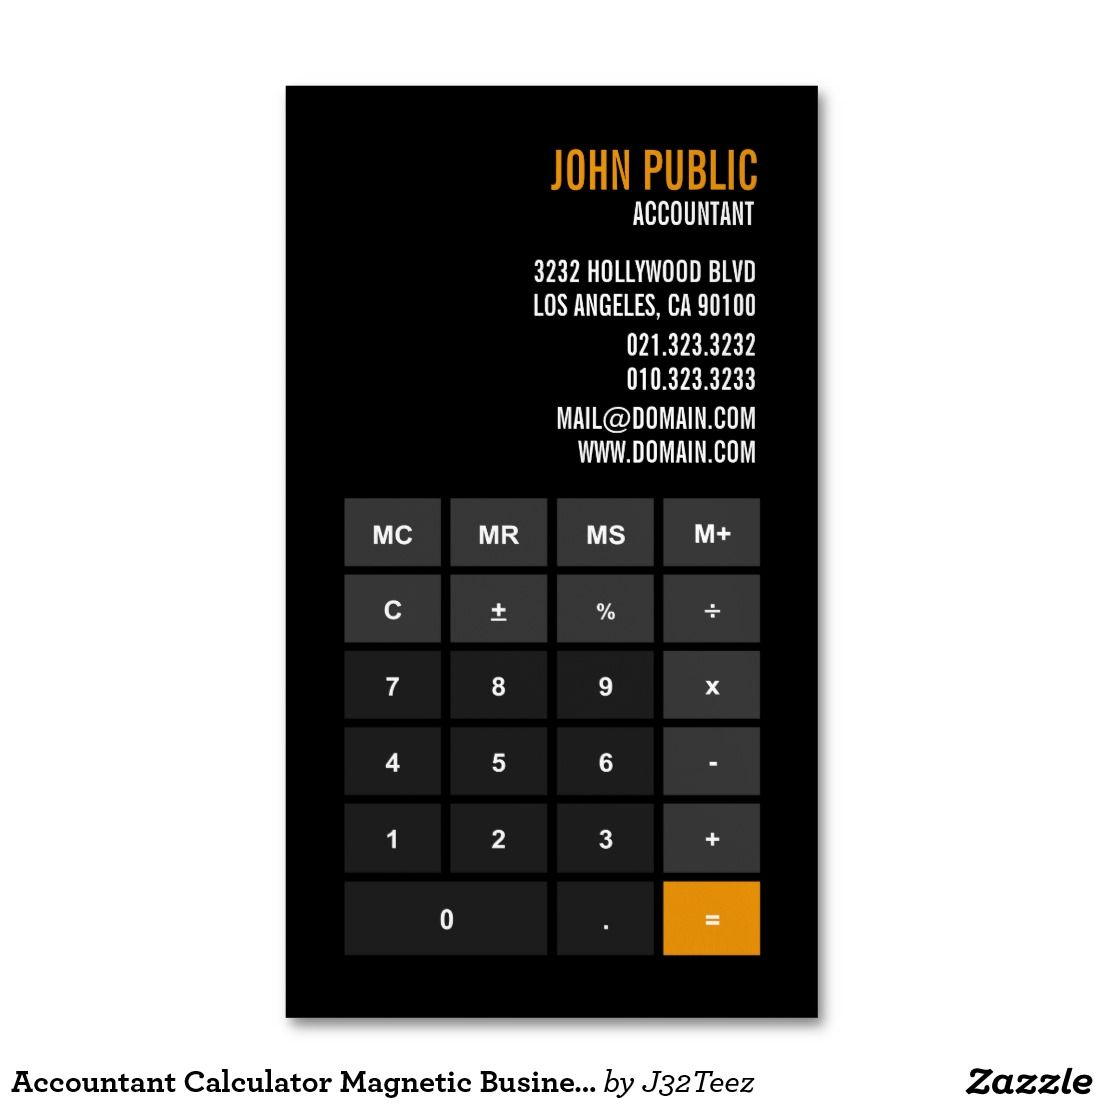 Accountant App Calculator Business Card Magnet | Magnetic business ...